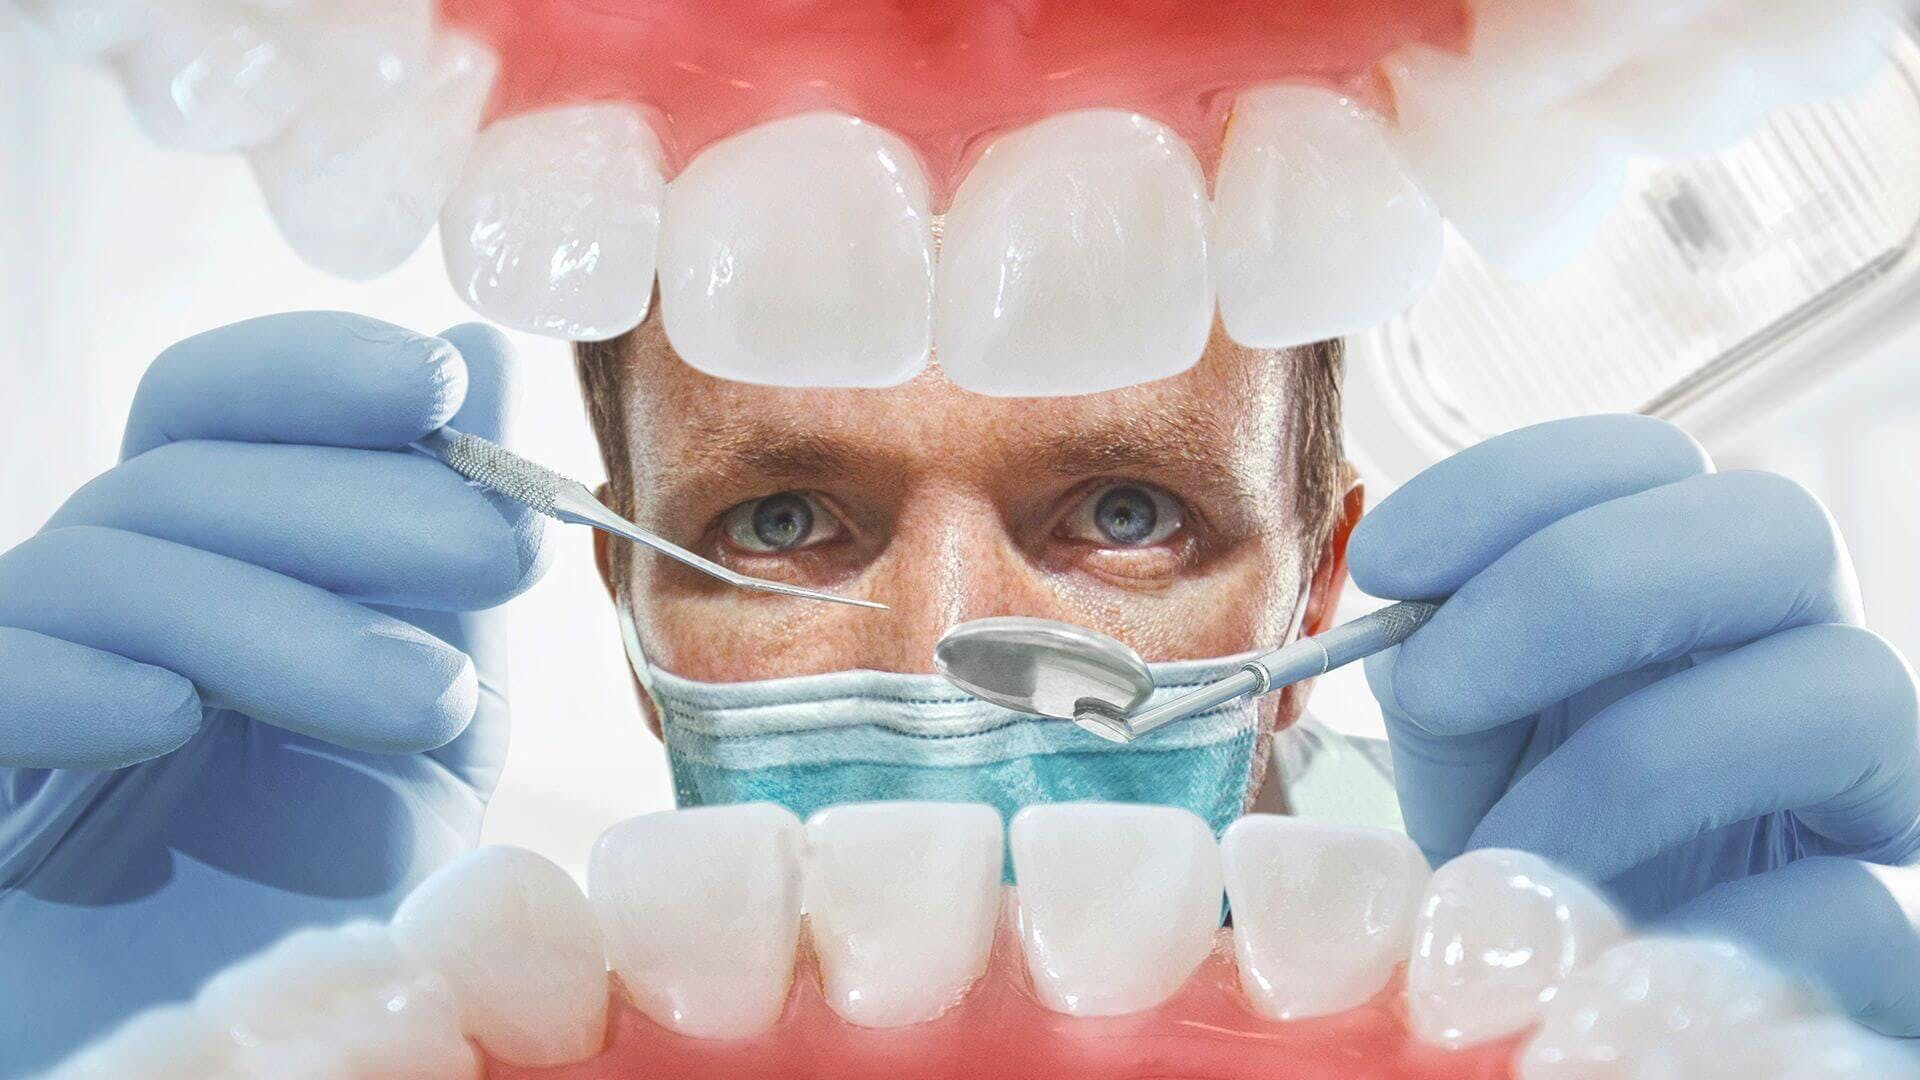 Dentist inspecting patient's mouth